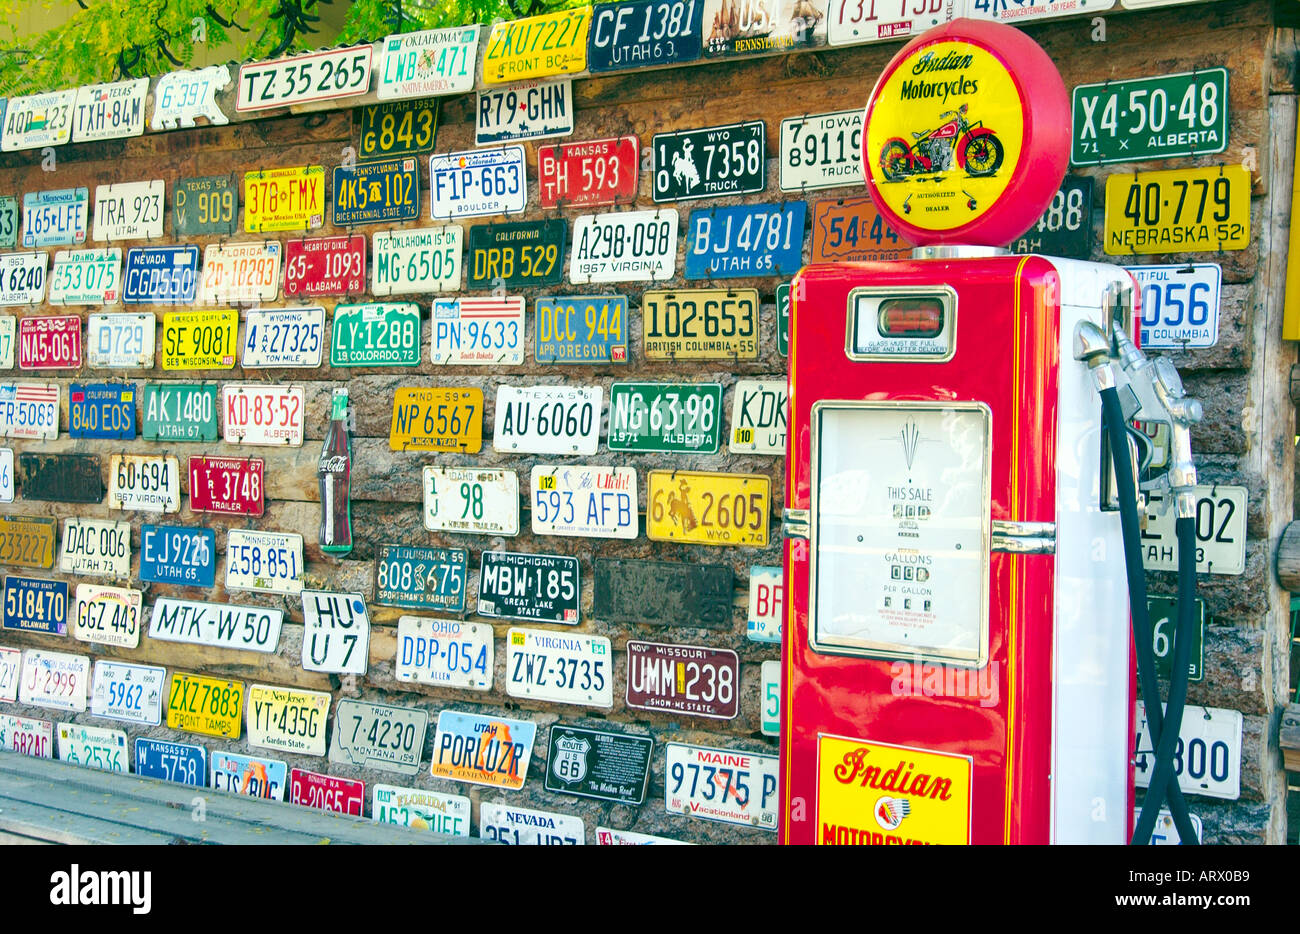 License Plate And Gasoline Pump Display At Hole In The Rock Utah Usa Stock Photo Alamy